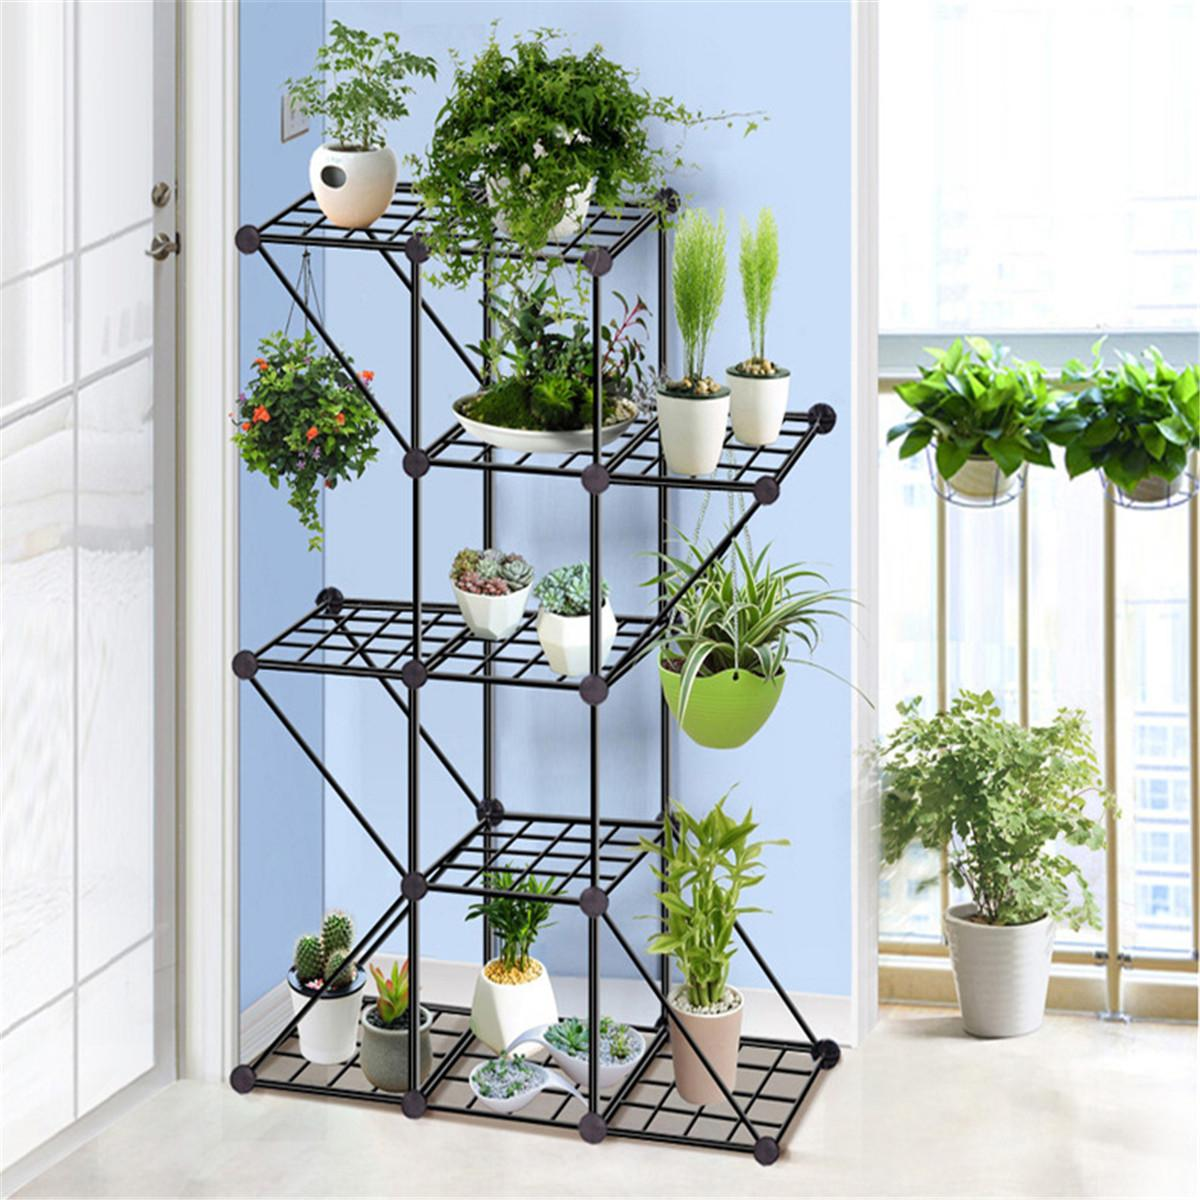 3/4 Layer  Wrought Iron Balcony Living Room Interior Modern Decoration Floor-standing  Flower Shelf Storage Flower Pot Shelf